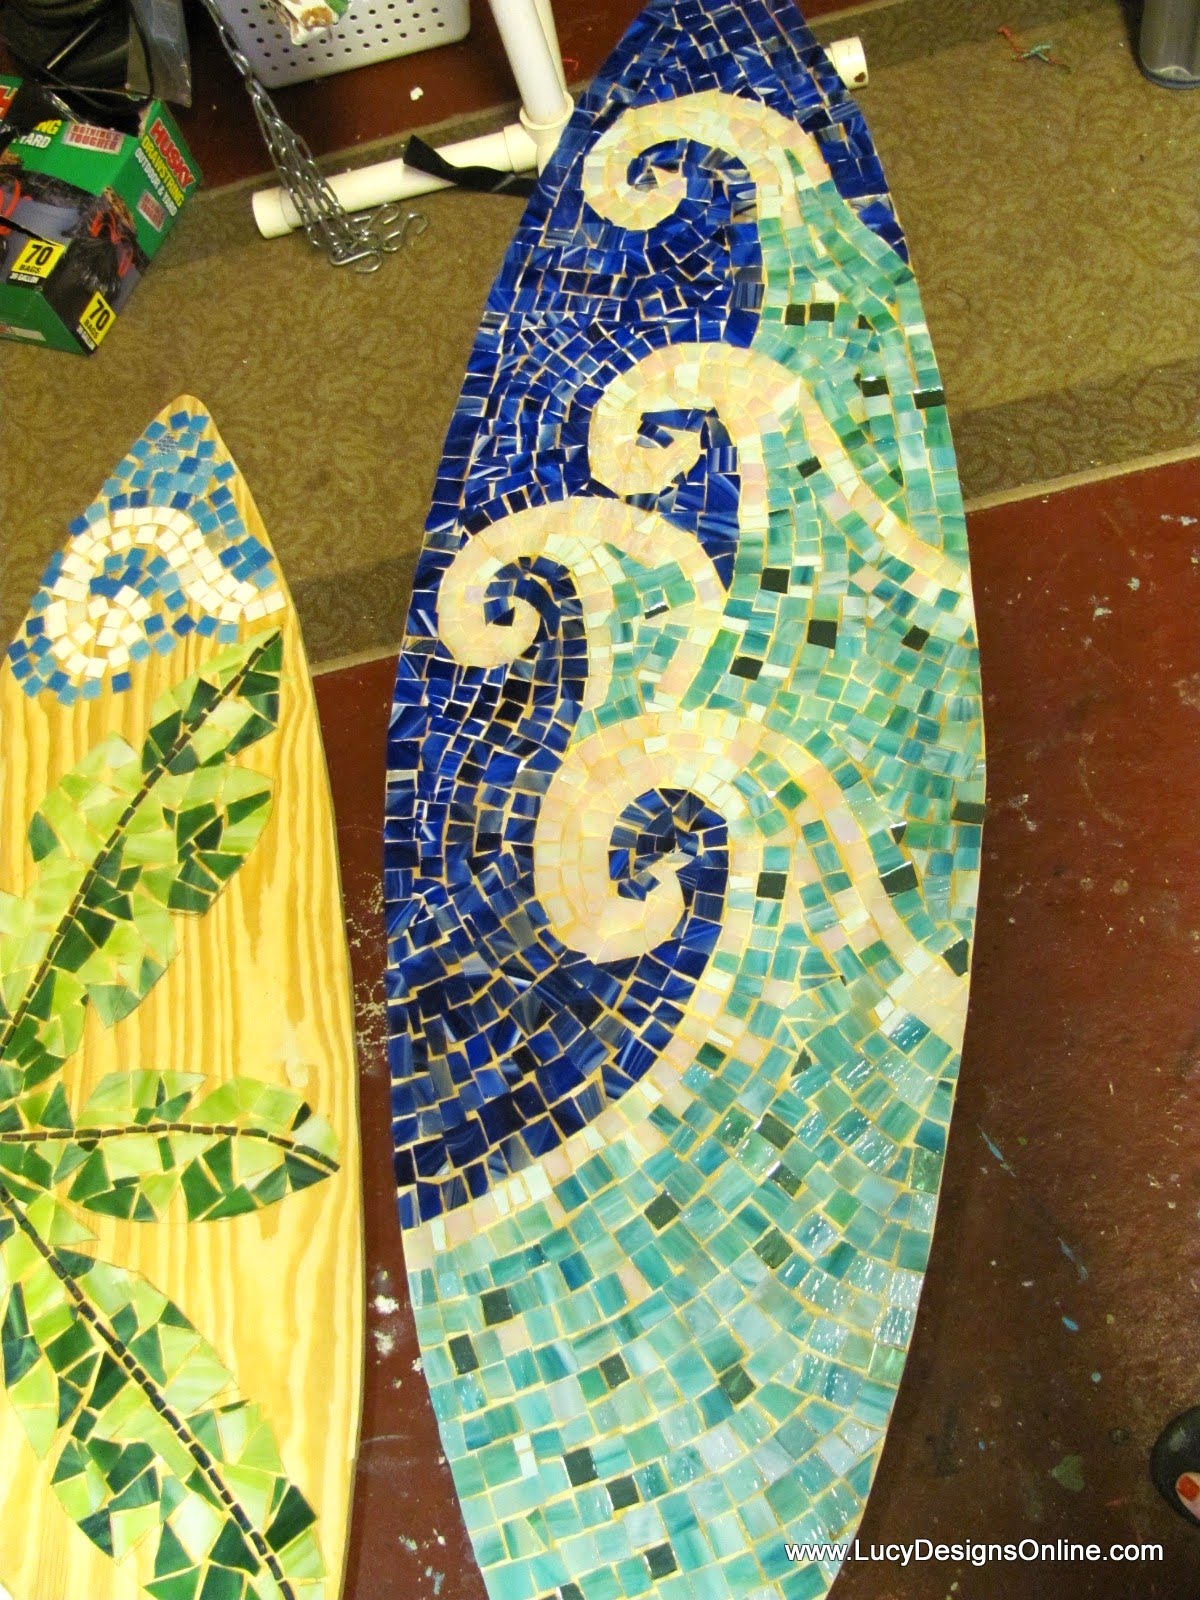 stained glass mosaic surfboard on wood base